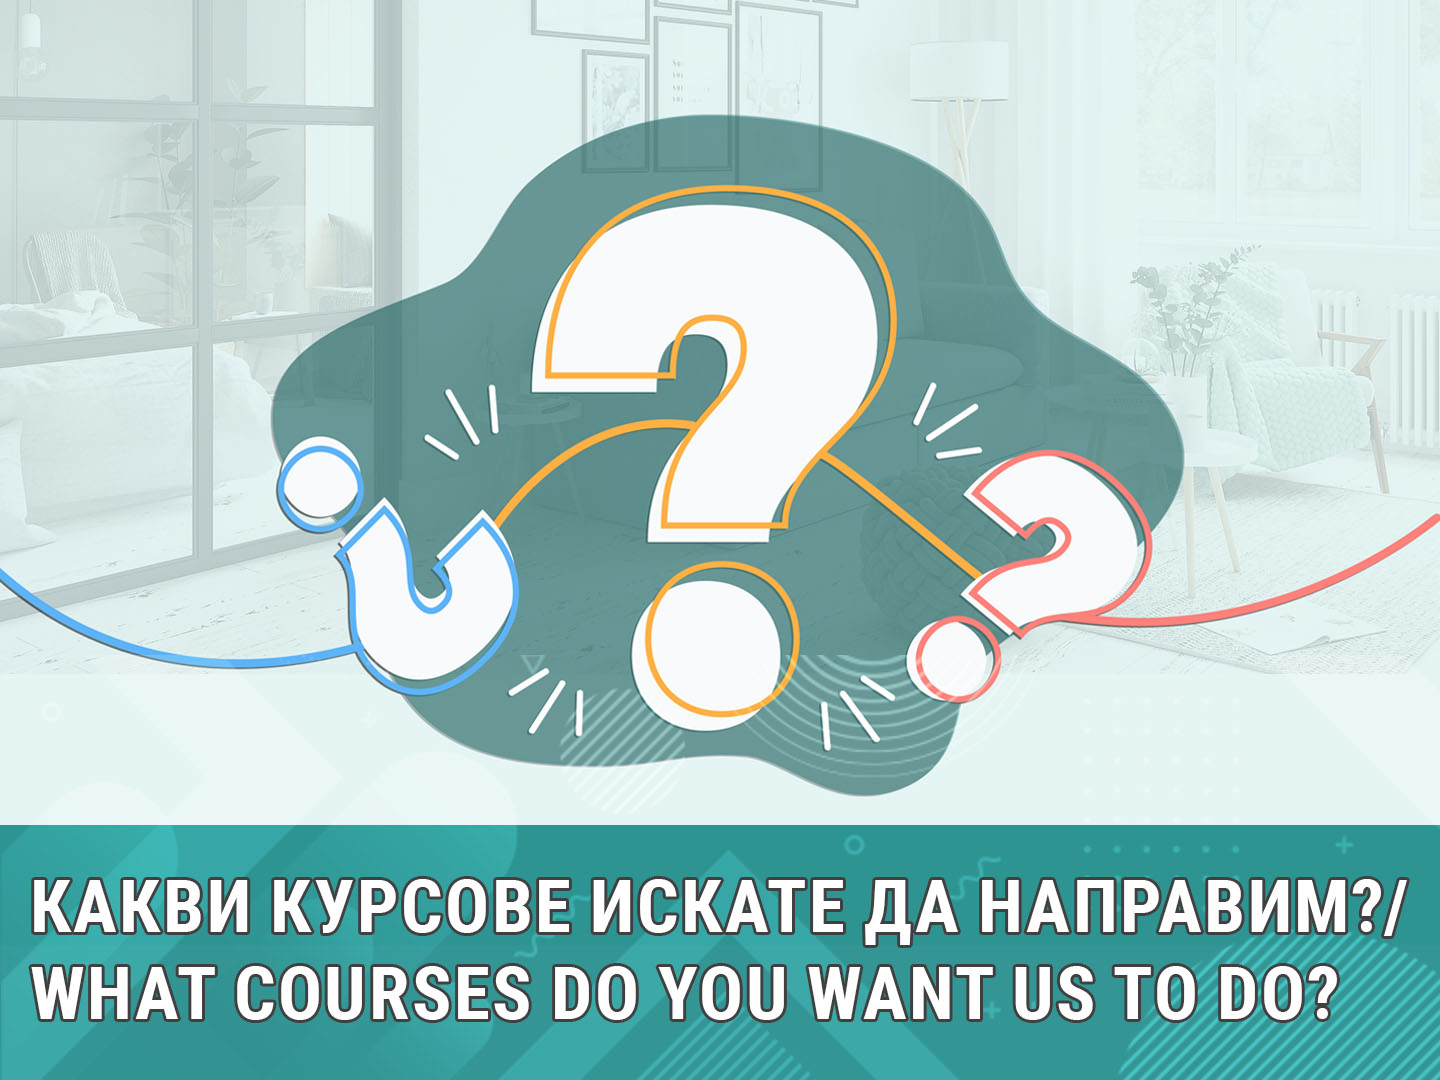 Какви курсове искате да направим?/ What courses do you want us to do?